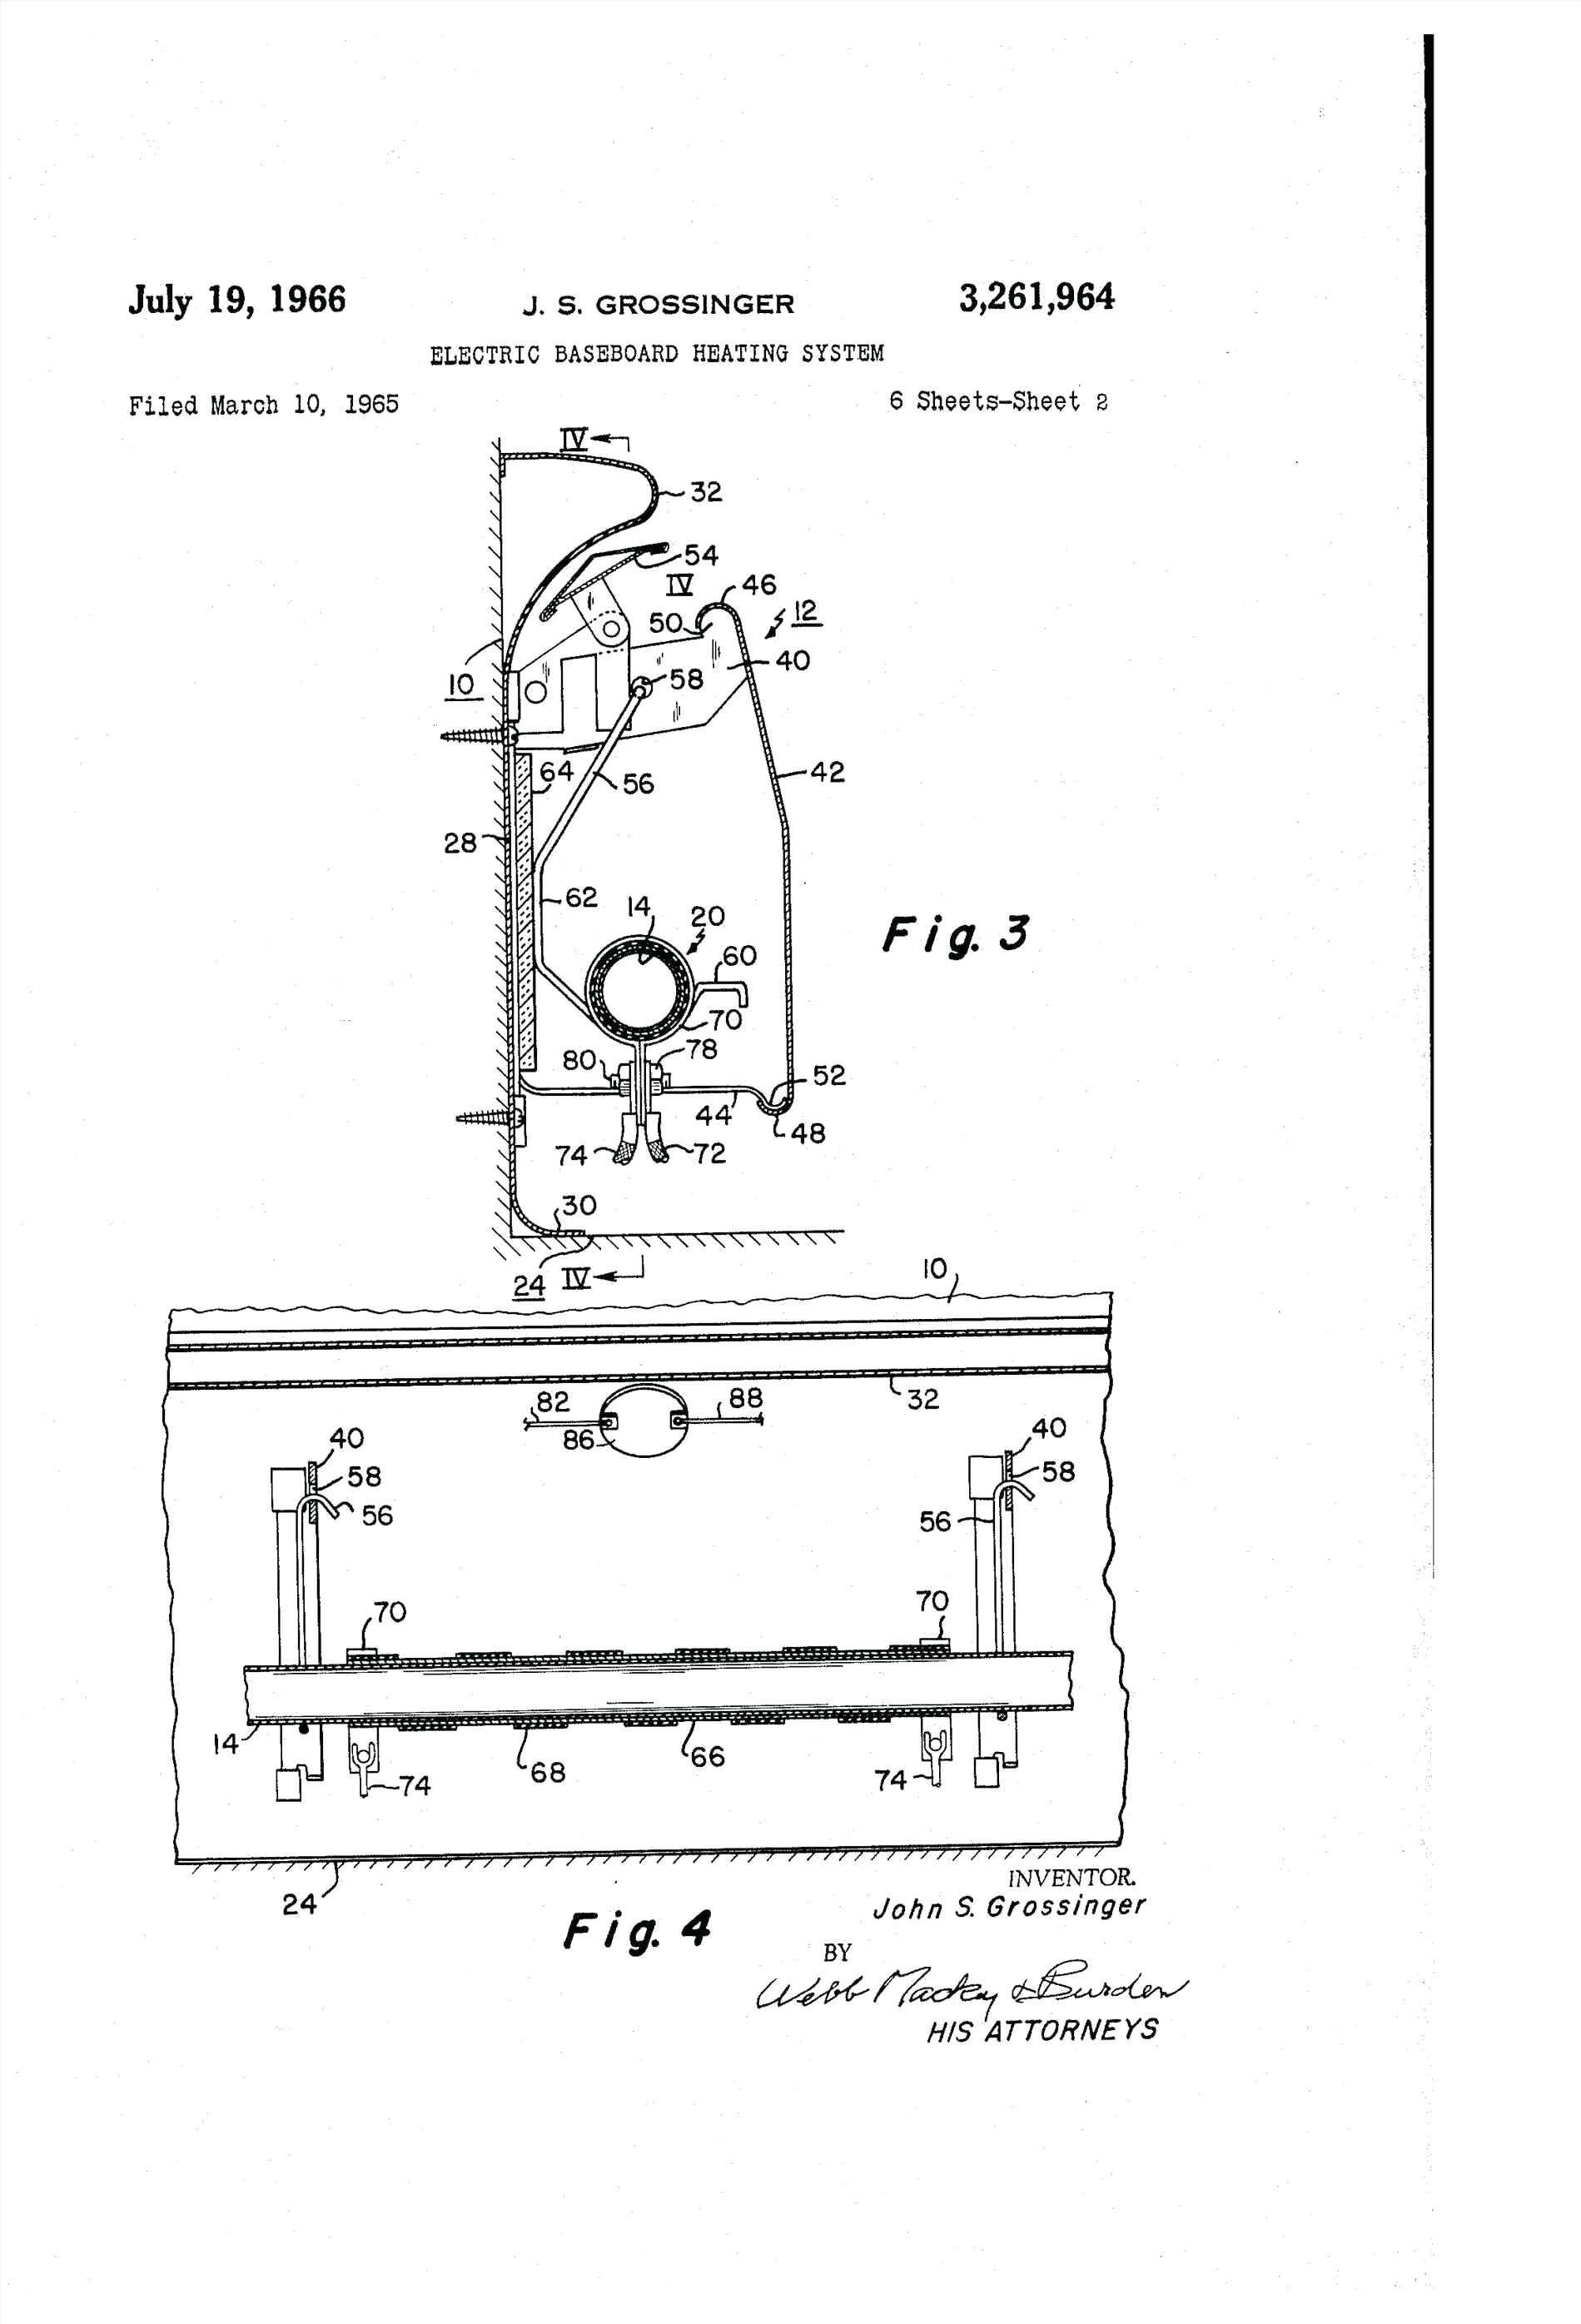 New Wiring Diagram for thermostat On Baseboard Heater